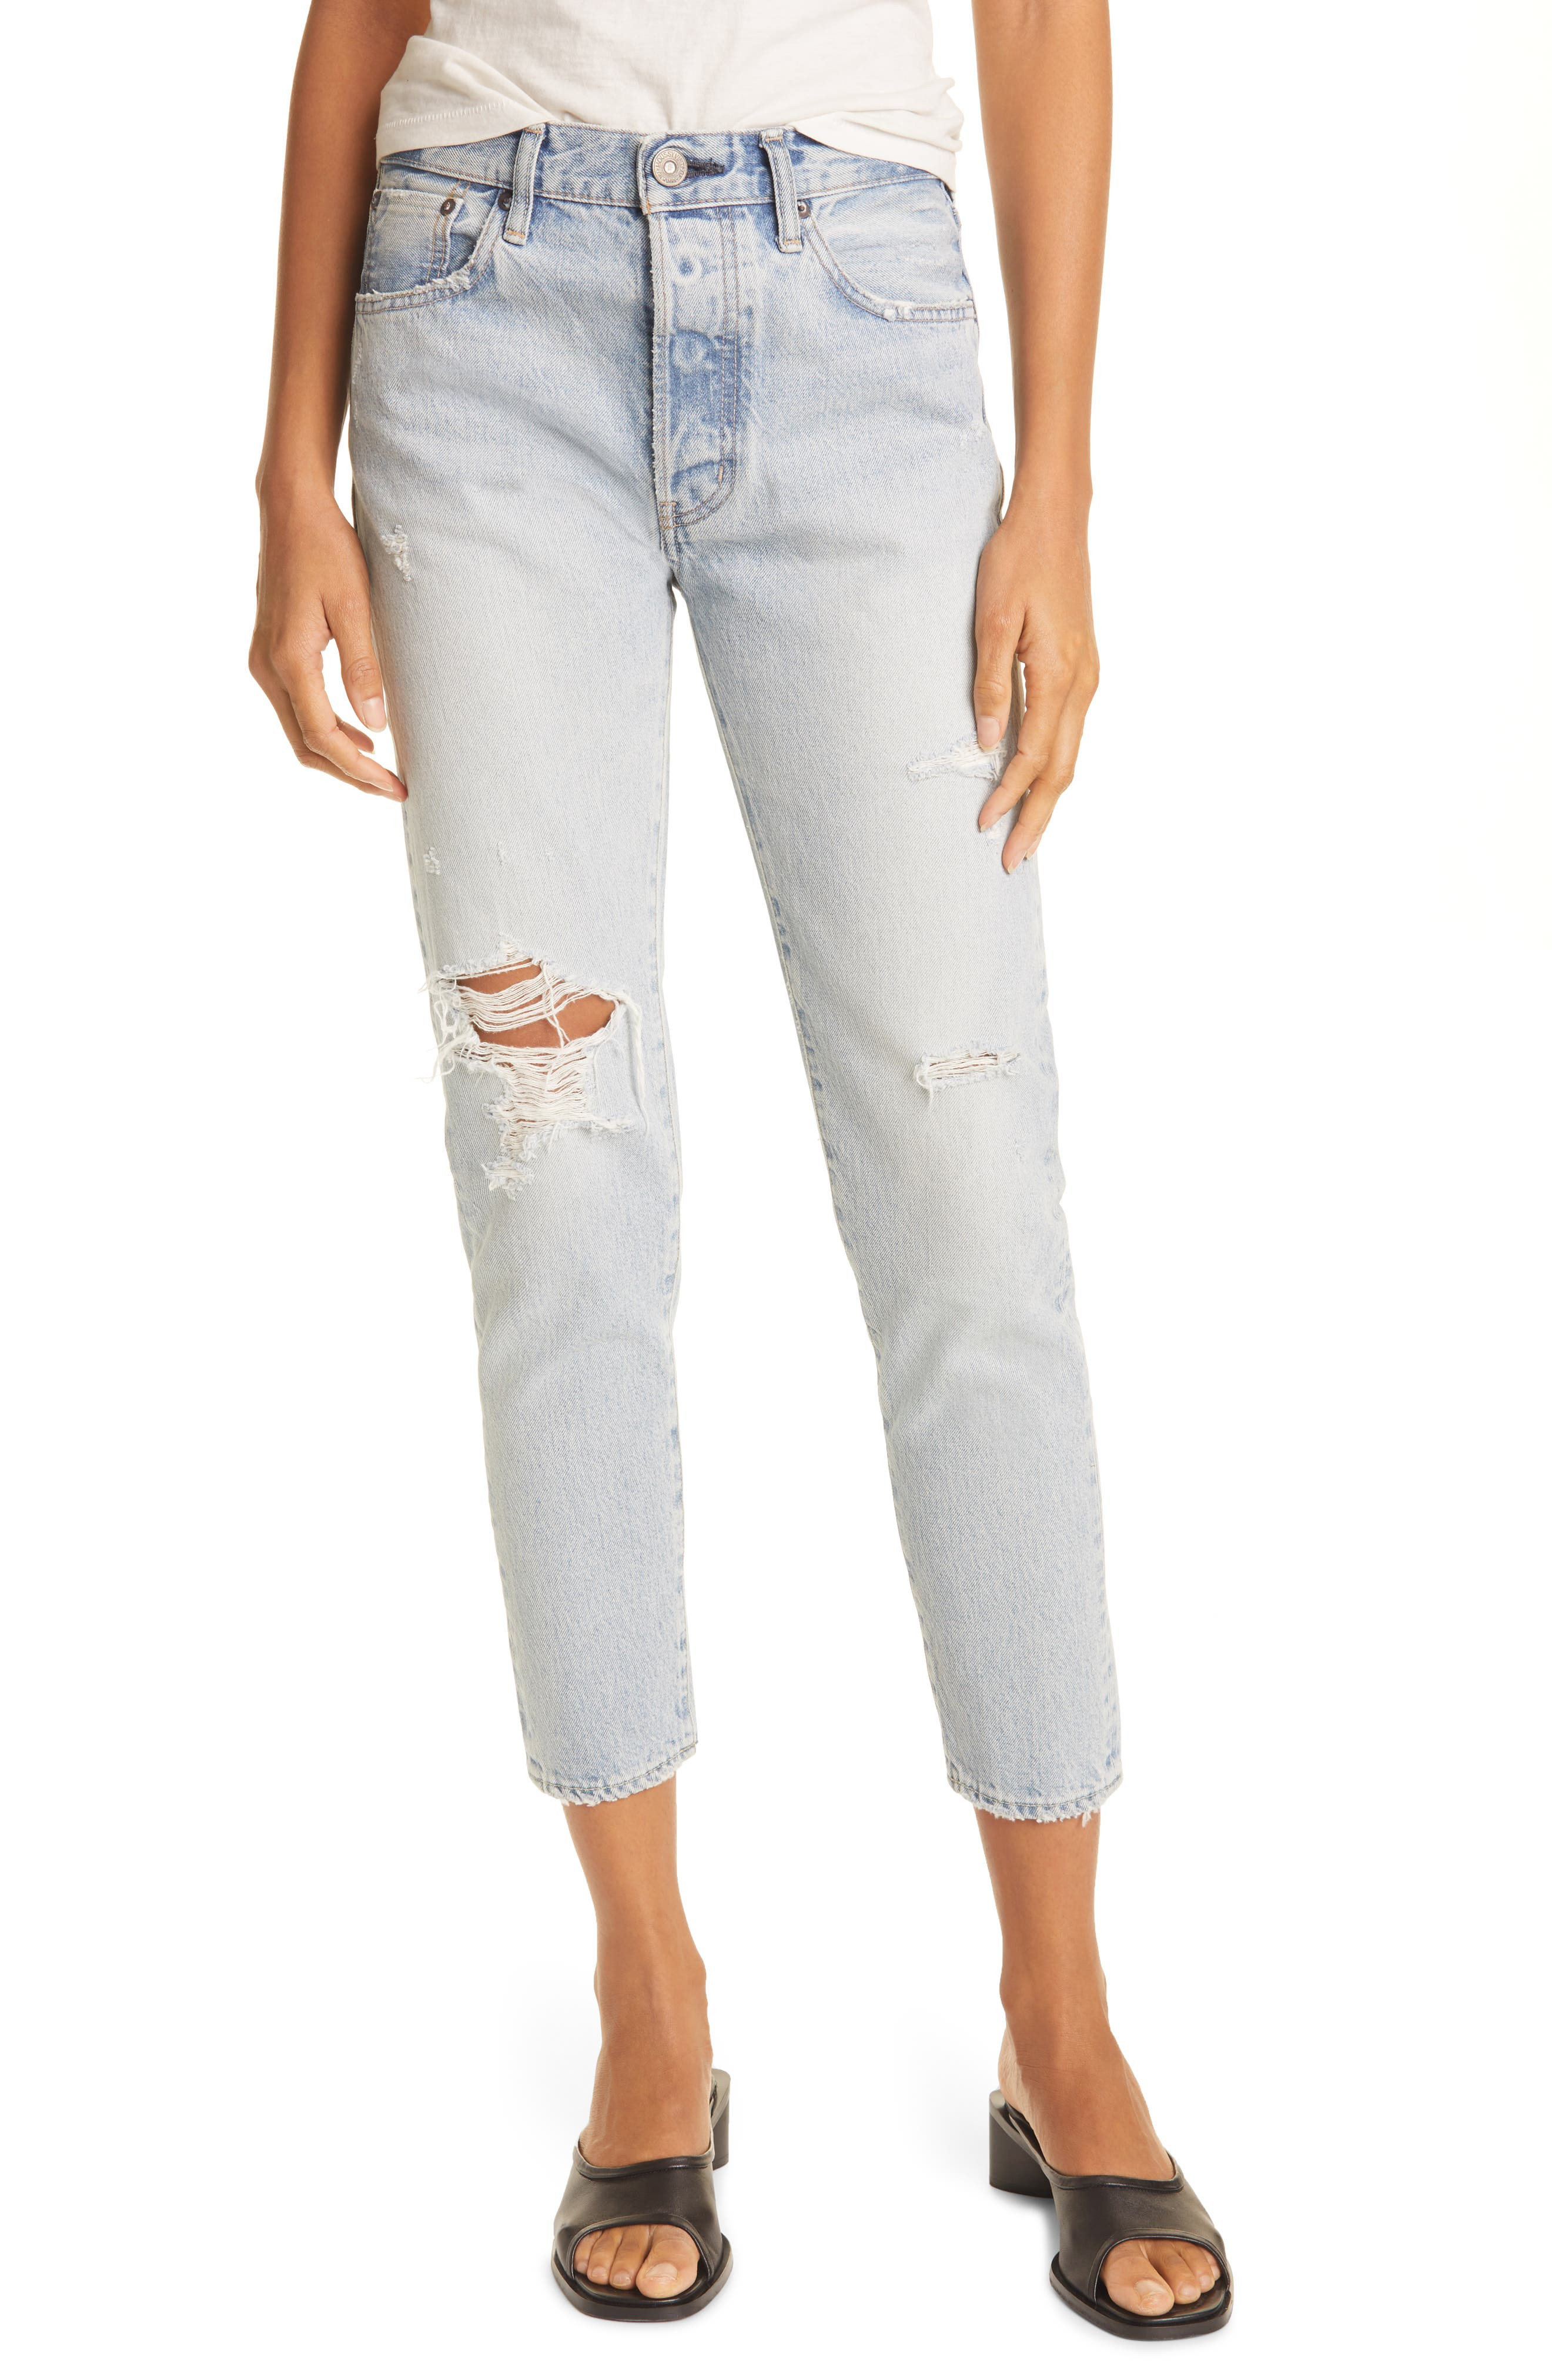 Melvin High Waist Tapered Skinny Jeans